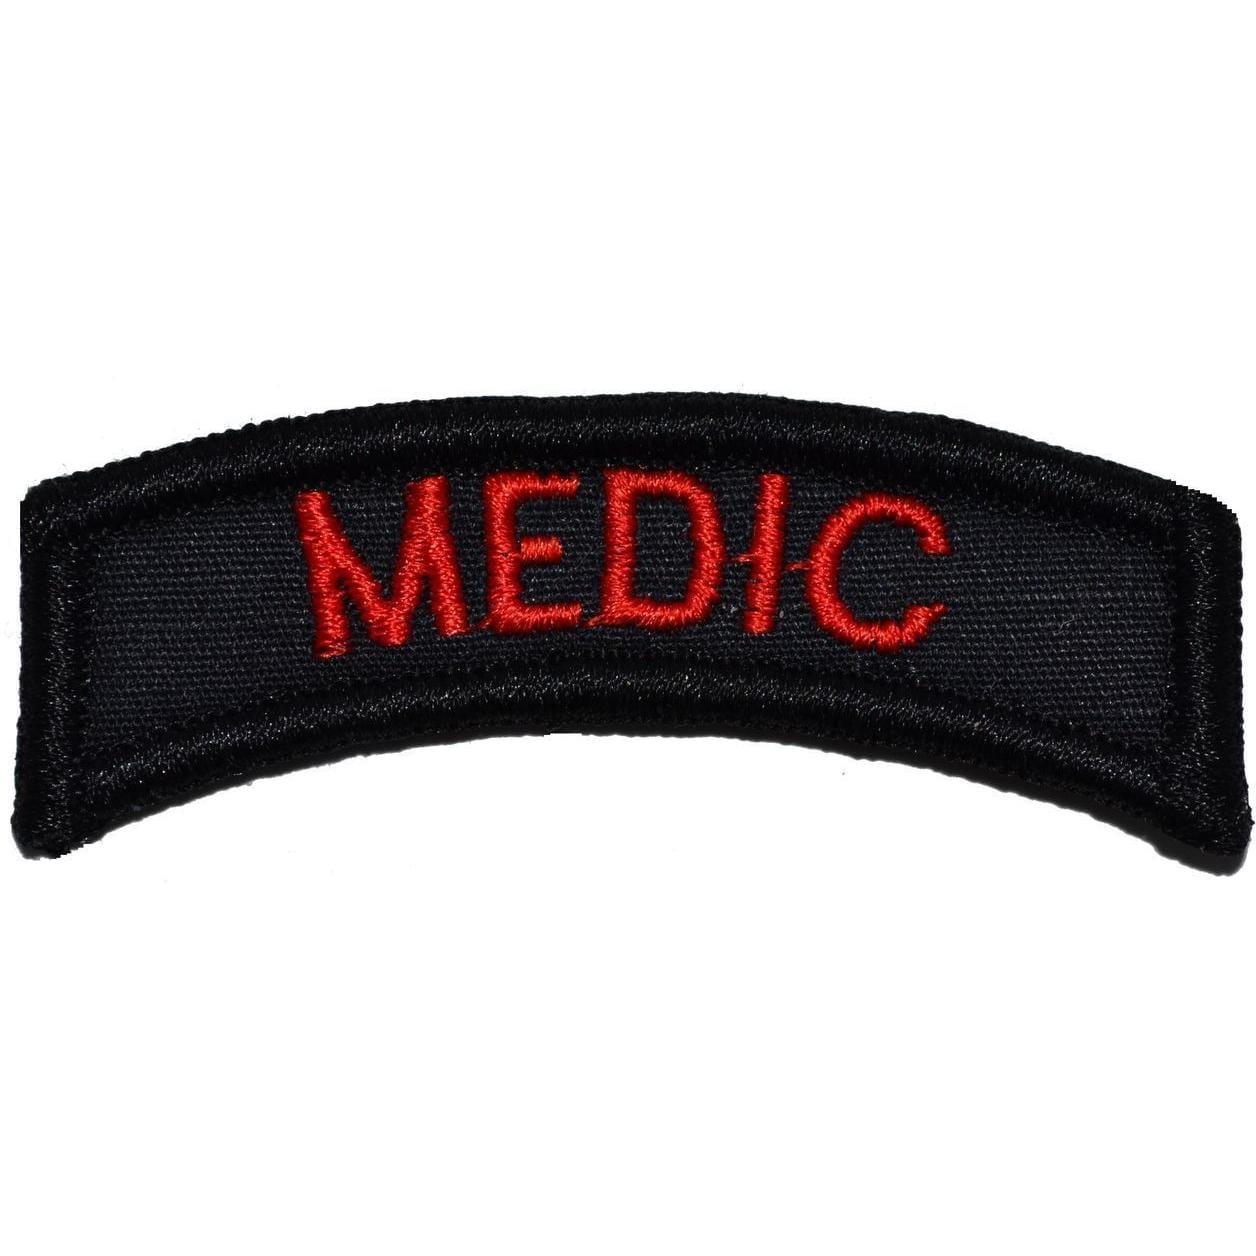 Tactical Gear Junkie Patches Black Medic Tab Patch